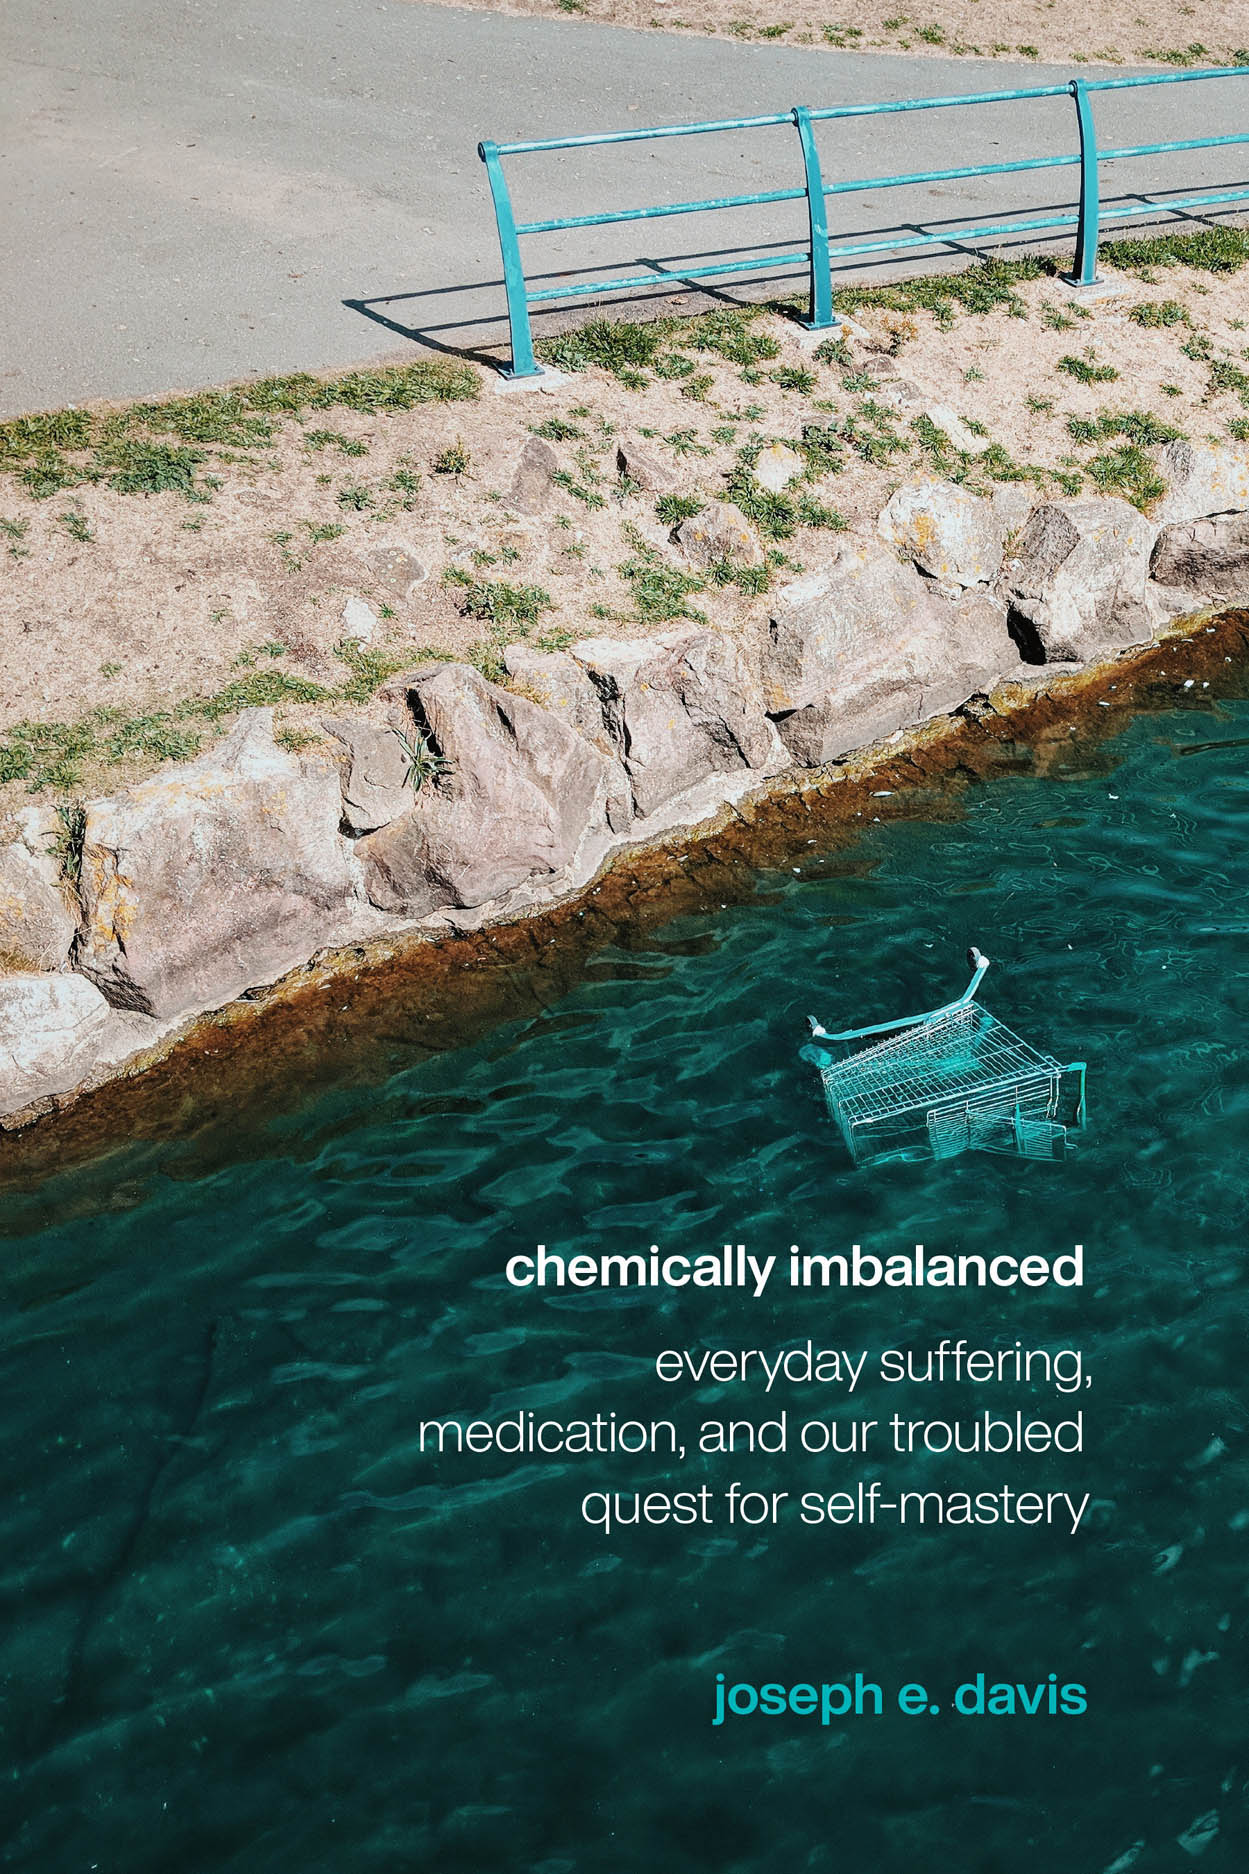 Chemically Imbalanced: Everyday Suffering, Medication, and Our Troubled Quest for Self-Mastery